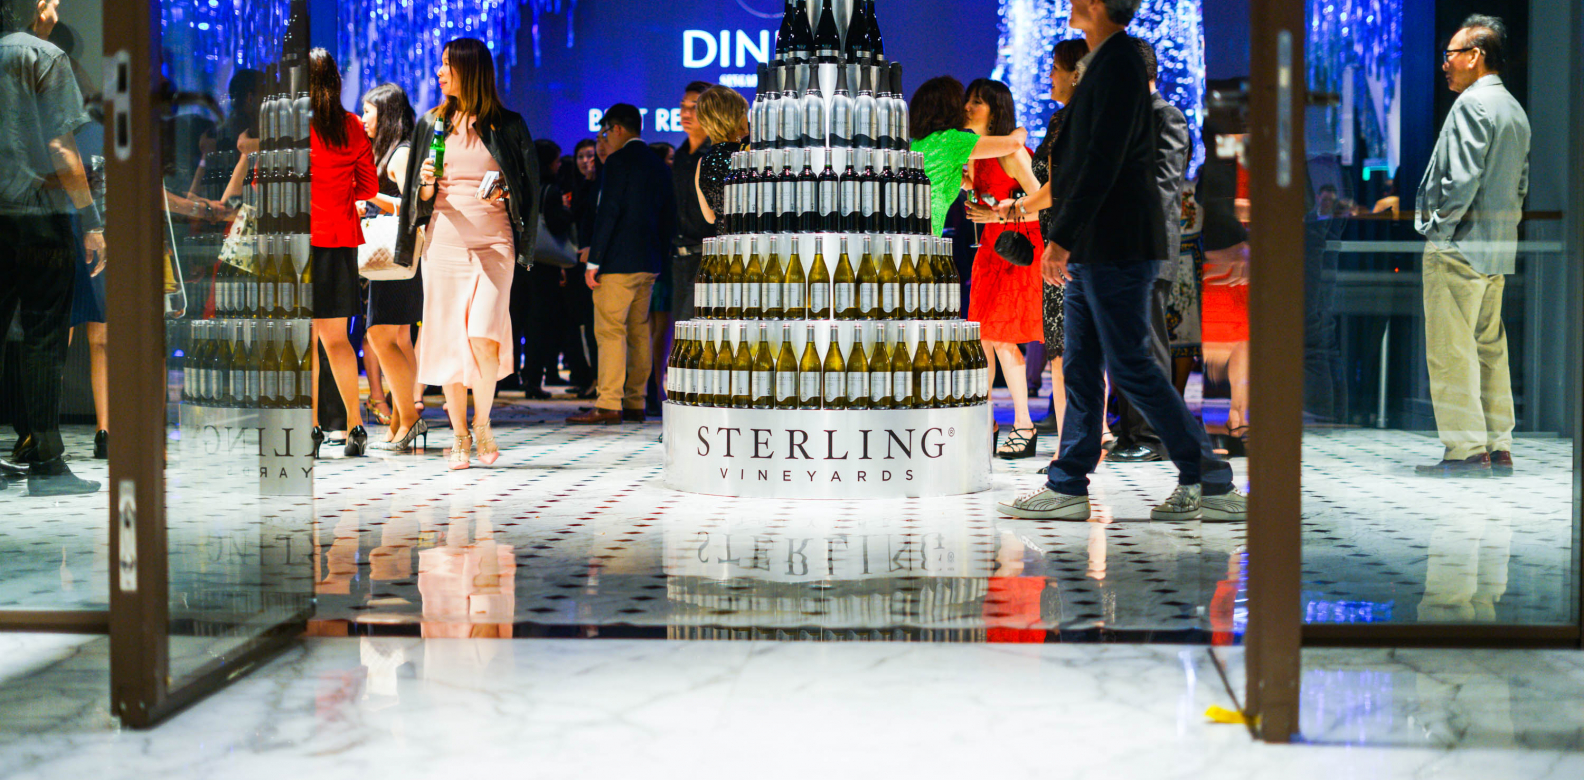 The stunning wine tower that immediately greeted guests upon entrance